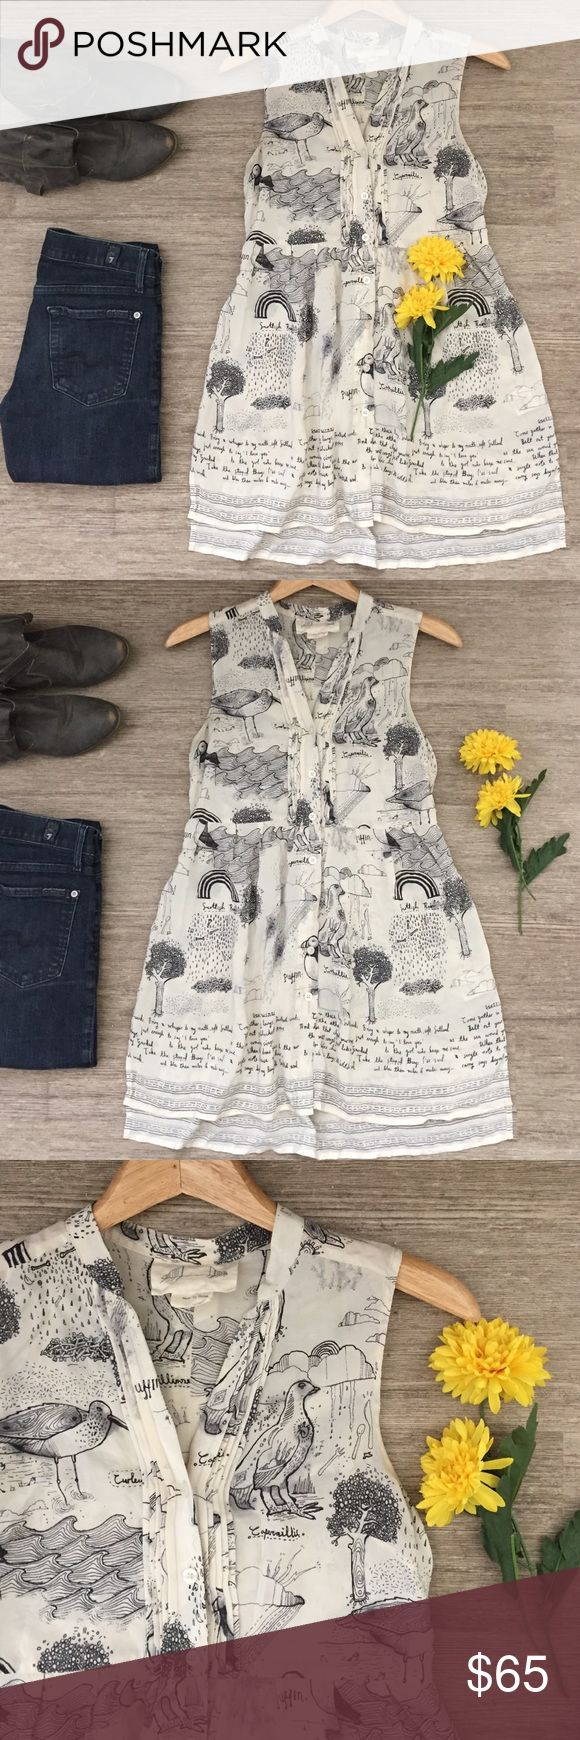 """Anthropologie Scottish Silk Tunic 🌼 Beautiful Anthropologie cream and black print button down sleeveless tunic.  Features whimsical images of Scotland and lyrics from Scottish Band Frightened Rabbit's Scottish Winds.  High/ low hemline.  So unique!  No size tag so check measurements.  Chest is 31"""" and length is 31"""" in front and 33"""" in back.  100% silk.  In excellent condition. Anthropologie Tops Tunics"""